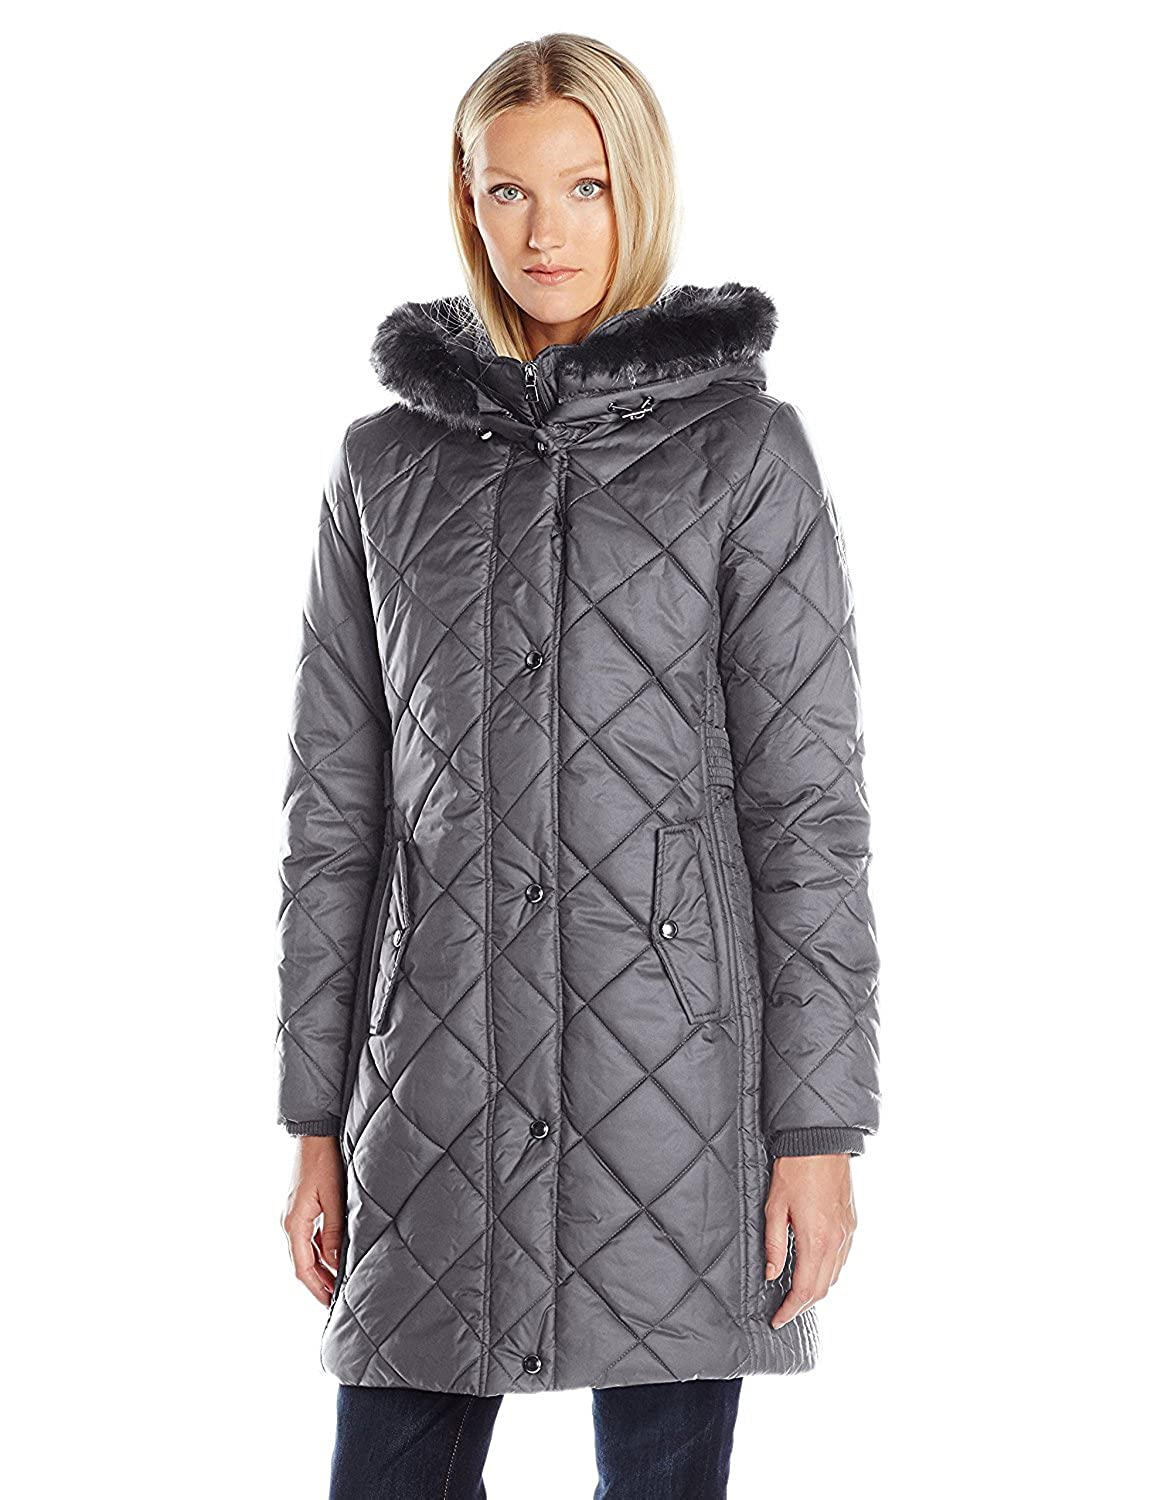 Larry Levine Women's 3/4 Diamond Quilted with Bib and Ff Trimmed Hood Pewter M [並行輸入品] B075CJK55H